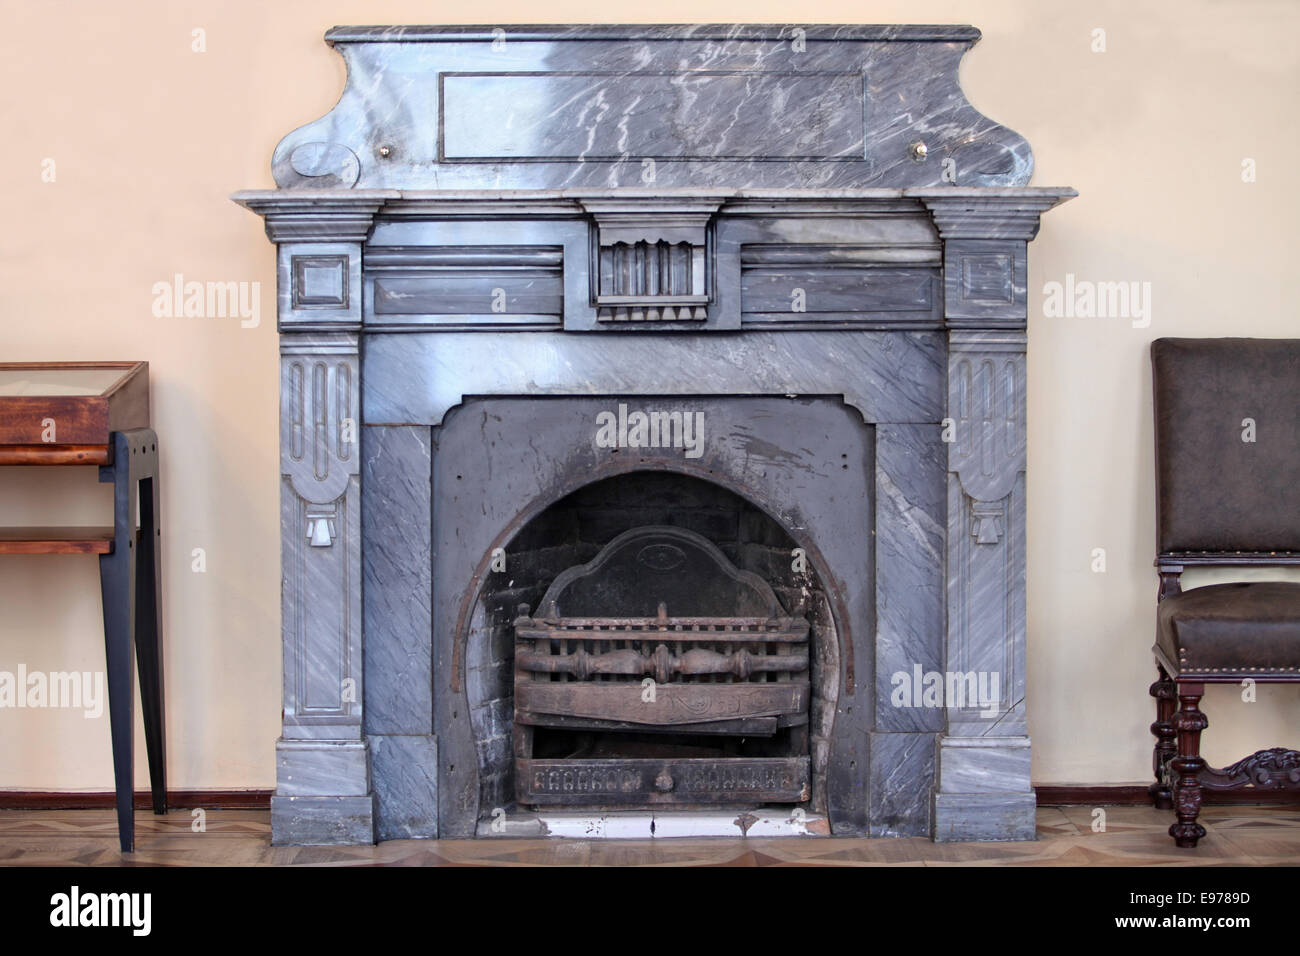 old fireplace - Stock Image